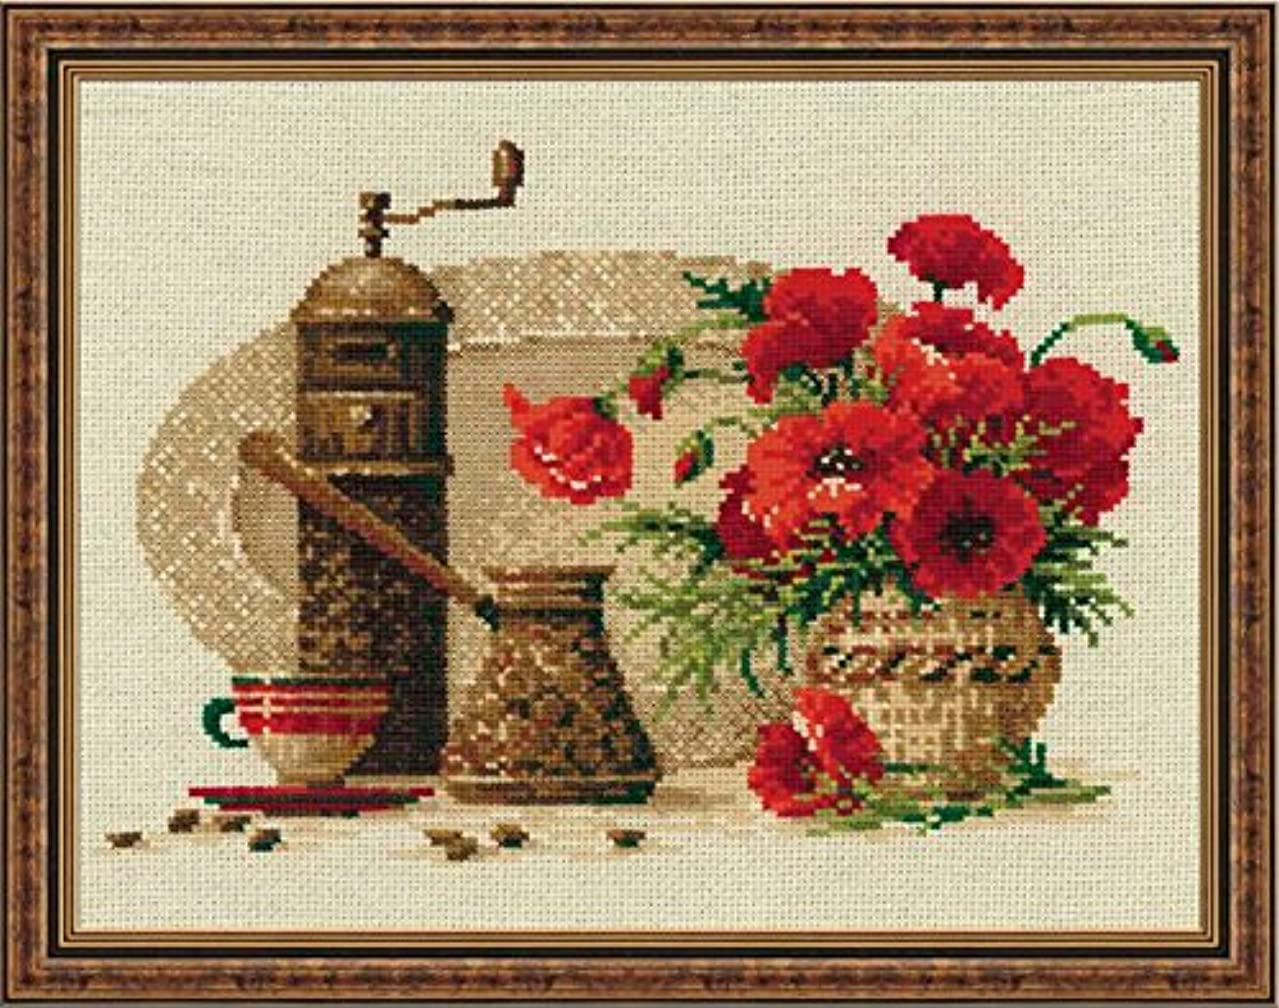 RIOLIS 1121 - Coffee - Counted Cross Stitch Kit 11?